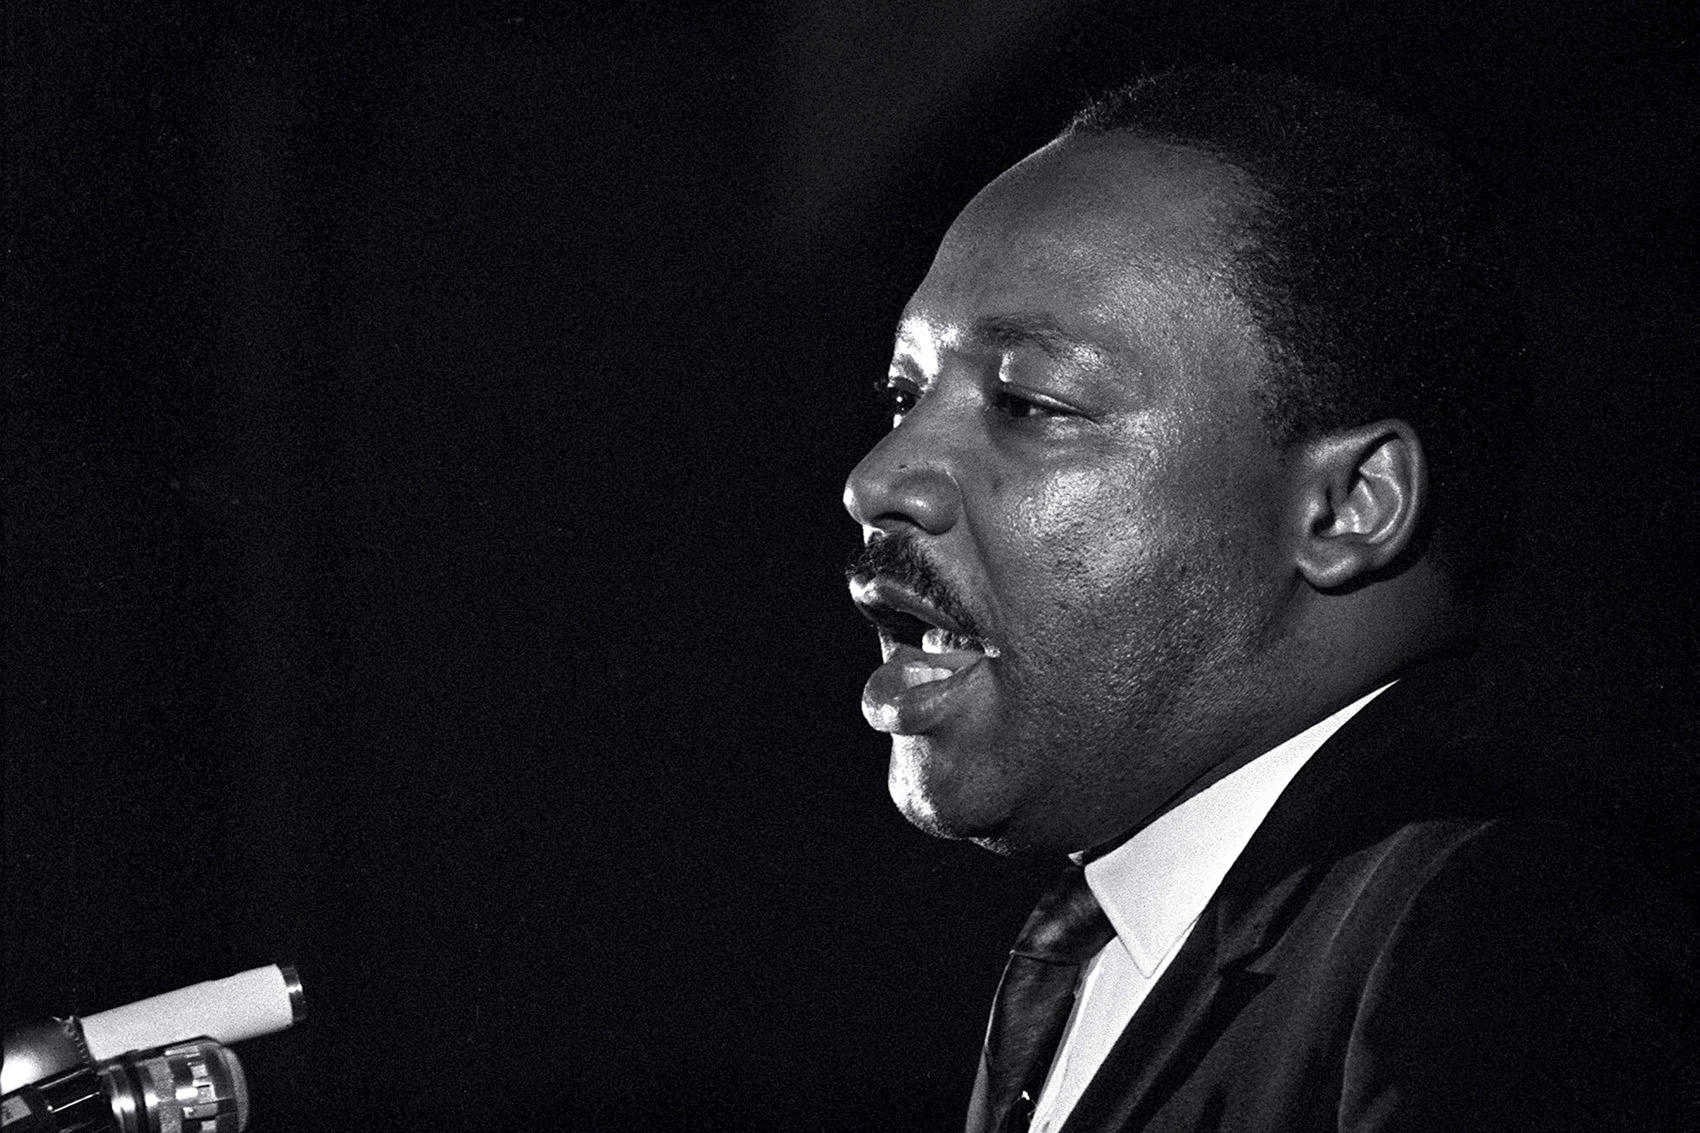 Years After His Assassination, Remembering Martin Luther King Jr. In Atlanta